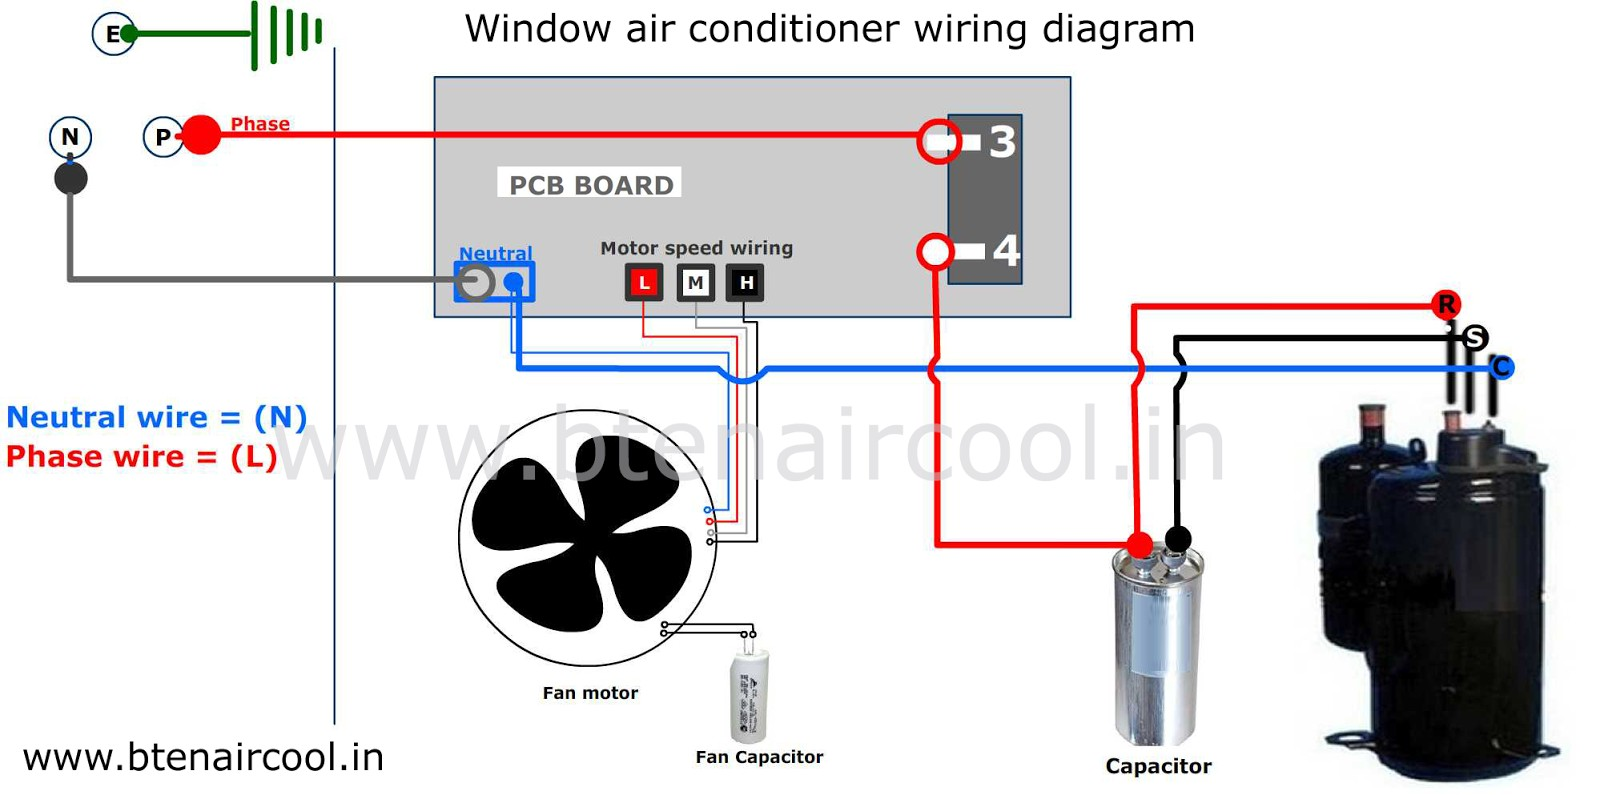 Wiring Diagram BTEN AIRCOOL How To Wire An Air Conditioner Wiring Diagram Window